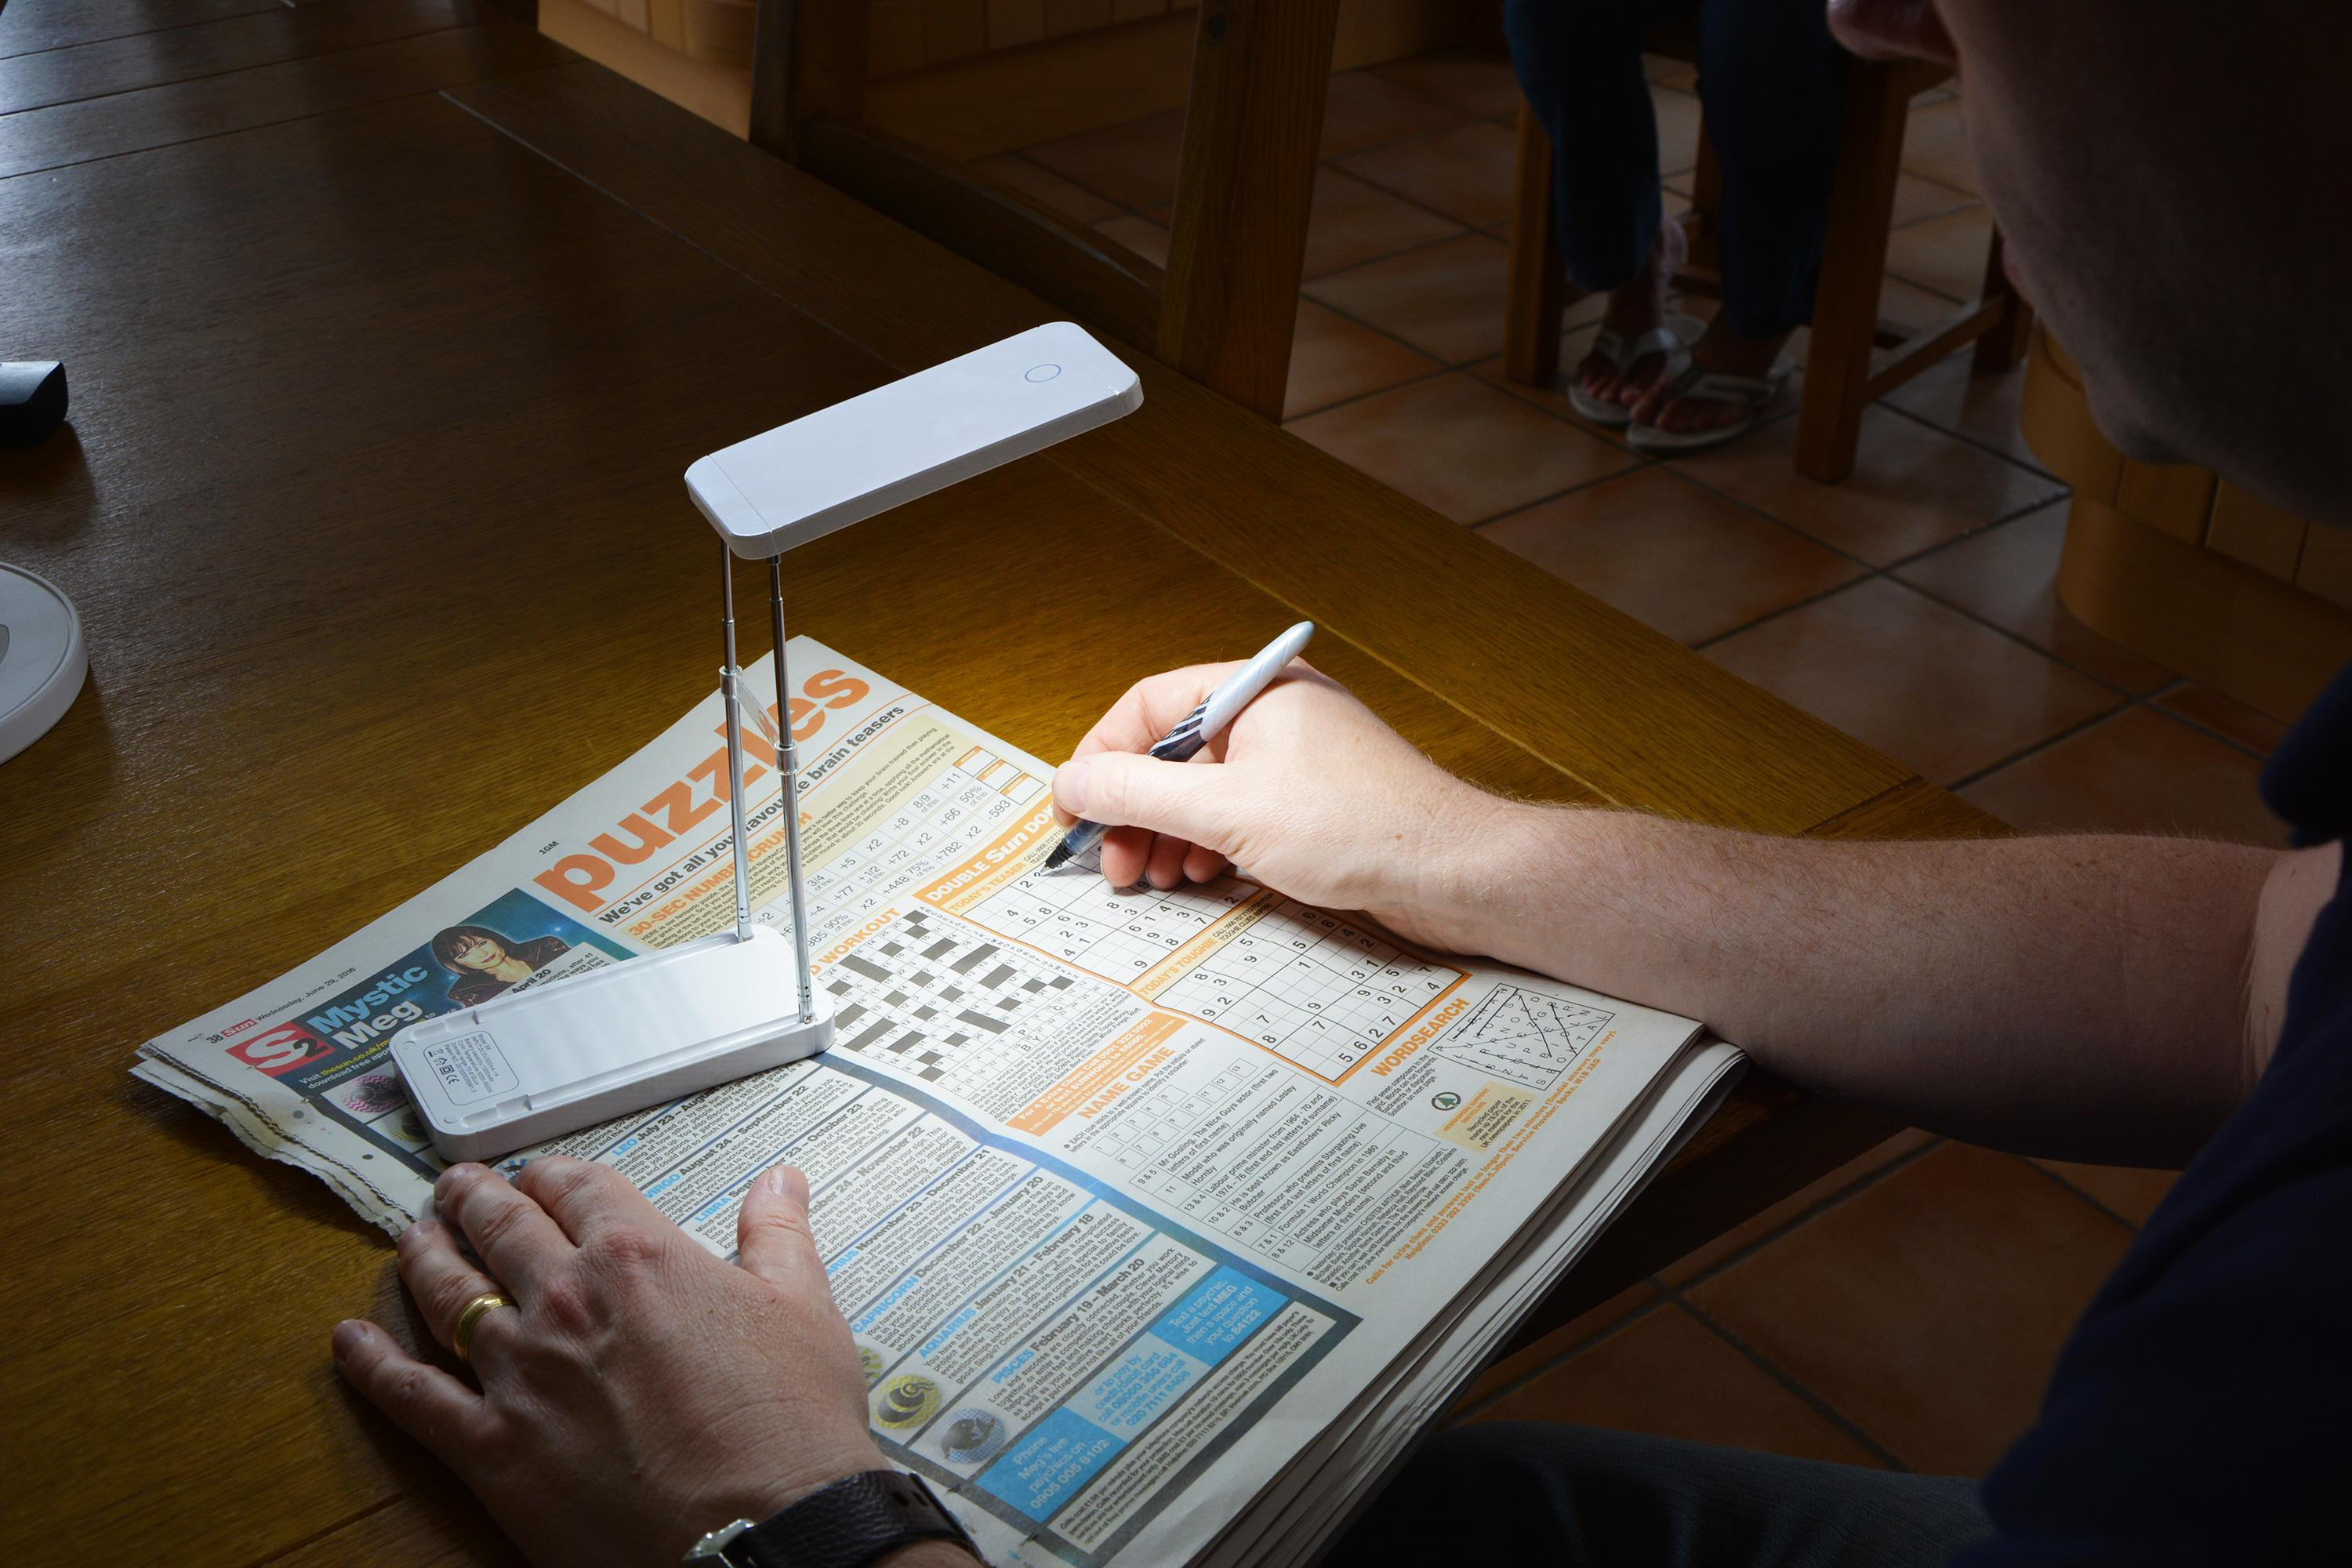 TravelBright 2 lighting up a newspaper crossword